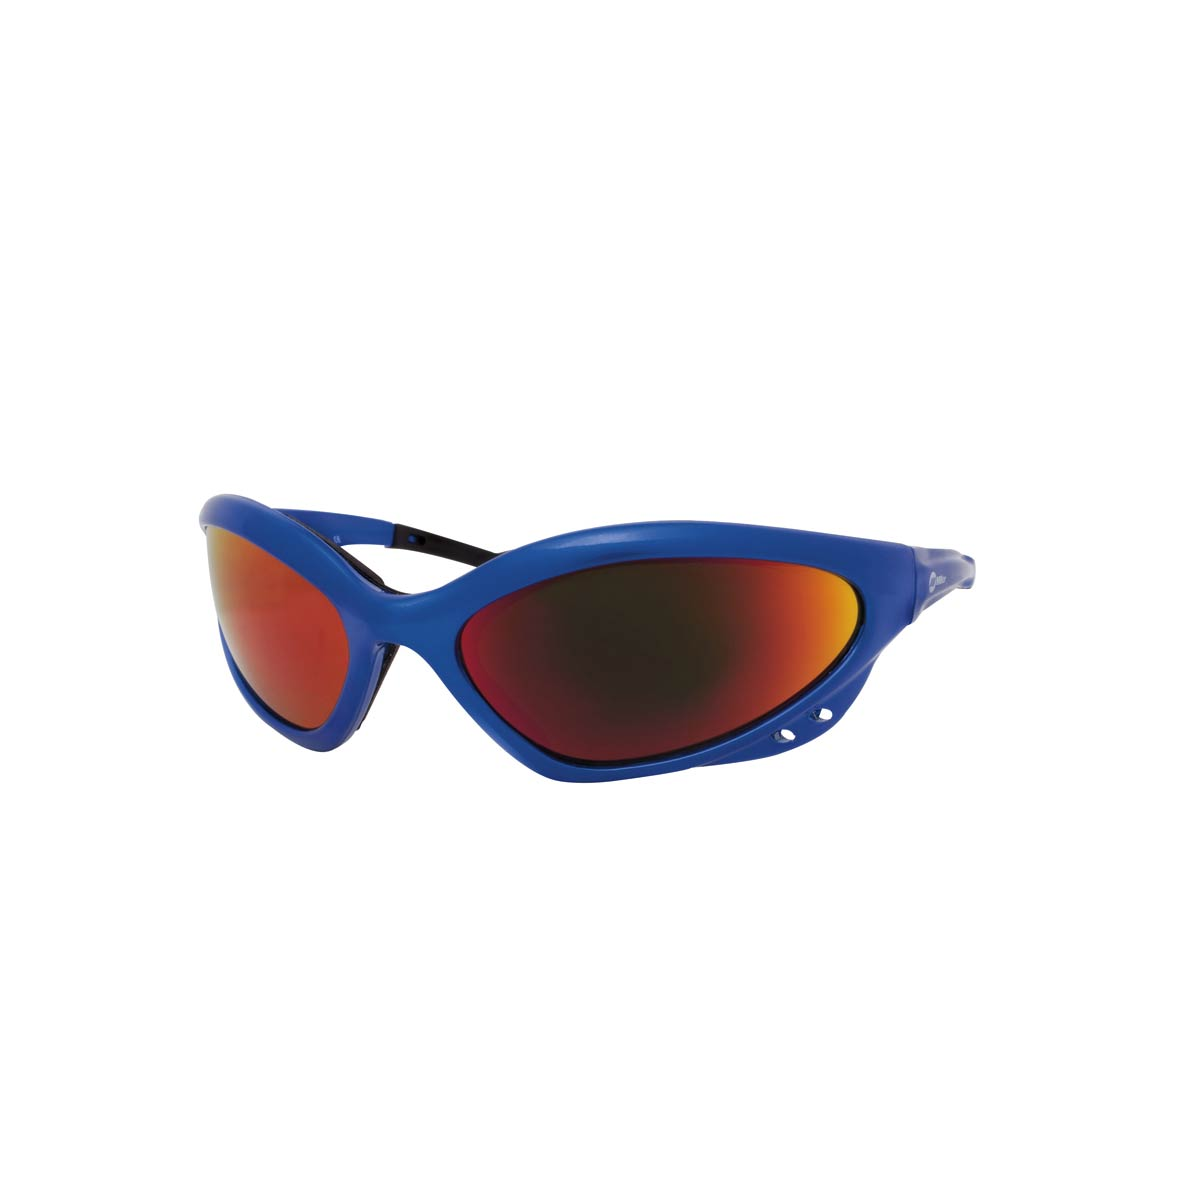 GLASSES SHADE 3/BLUE FRAME. Part: 235661. Pack: 1